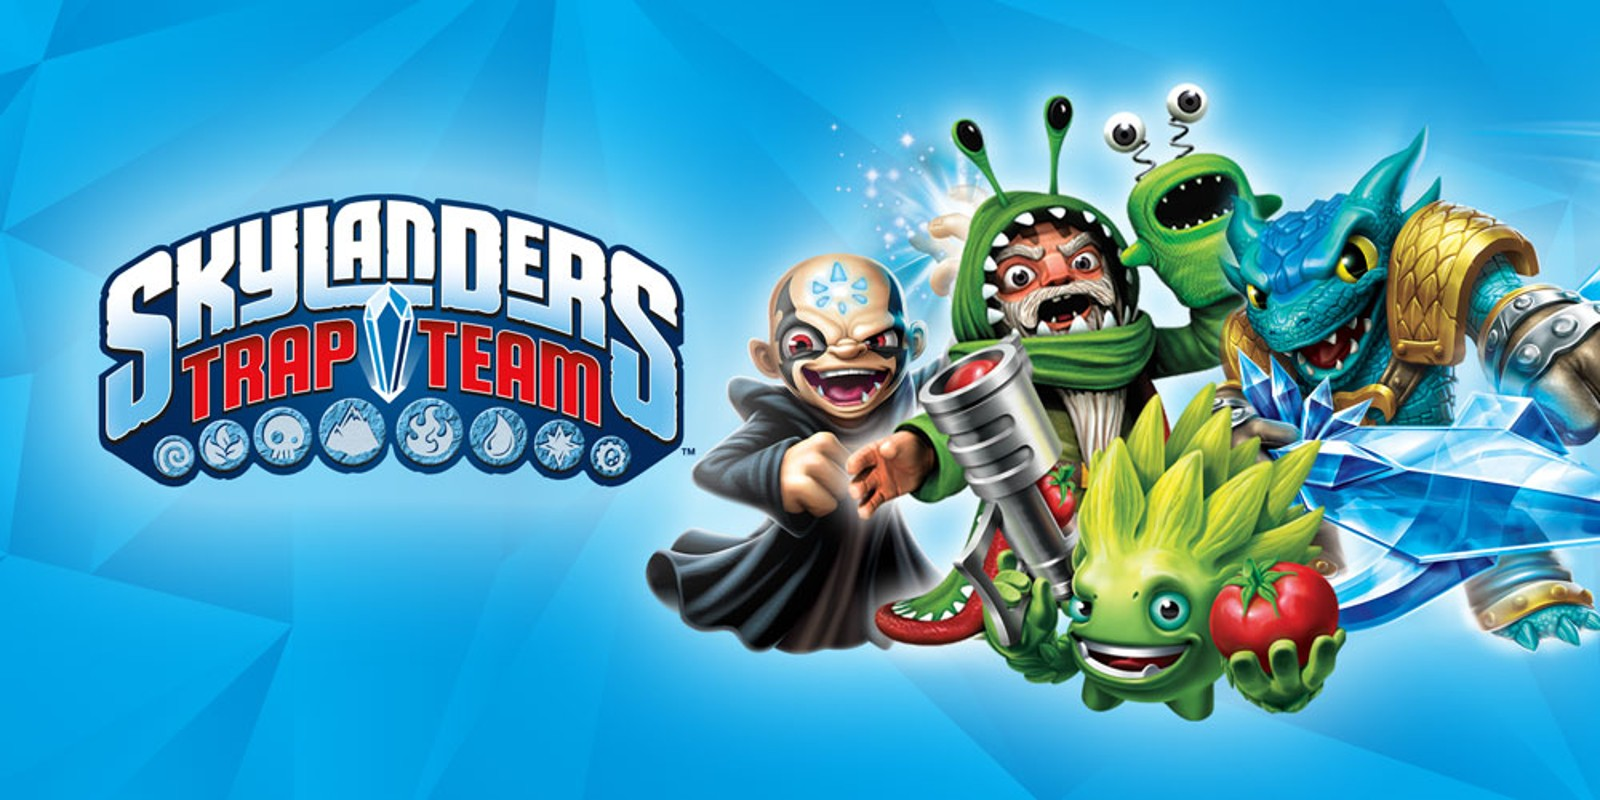 skylanders trap team wallpaper - photo #11